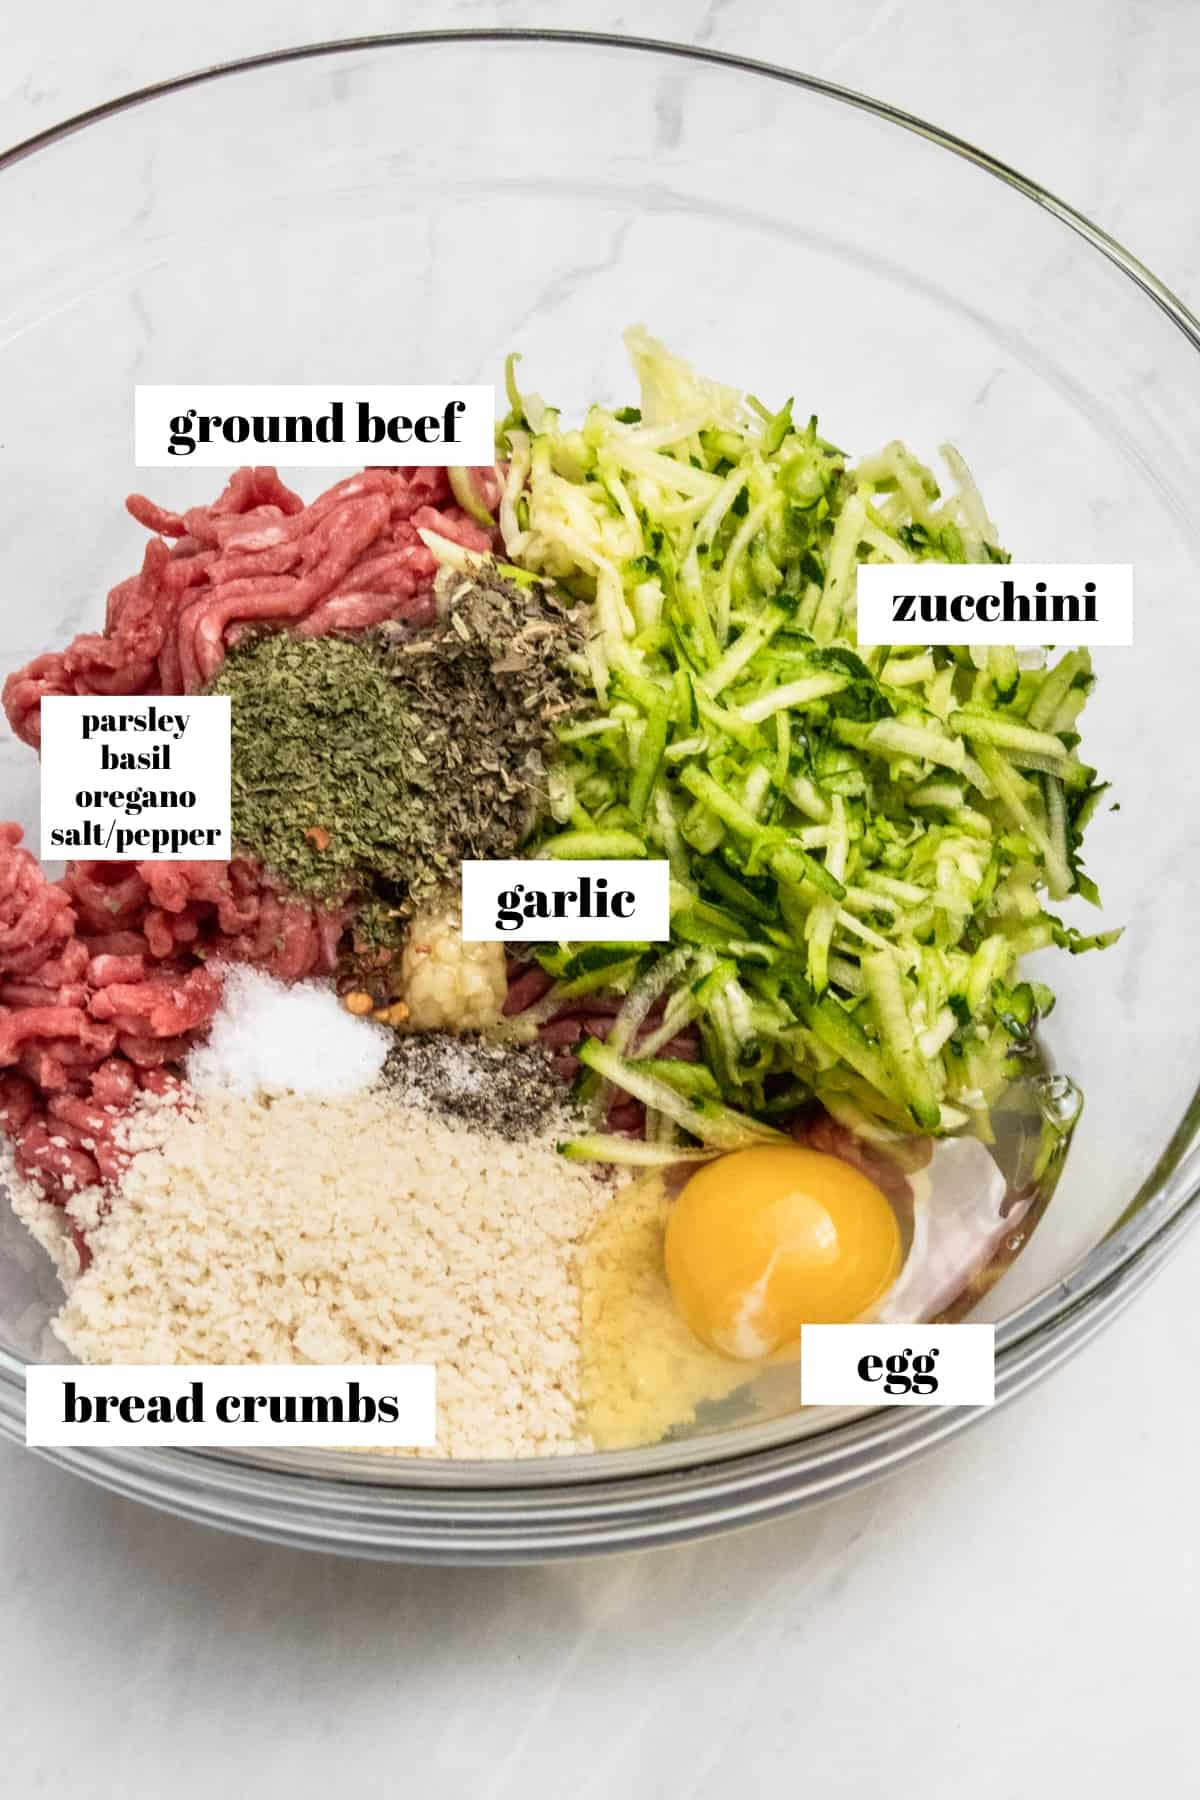 Zucchini, ground beef, breadcrumbs, egg and seasonings in bowl.